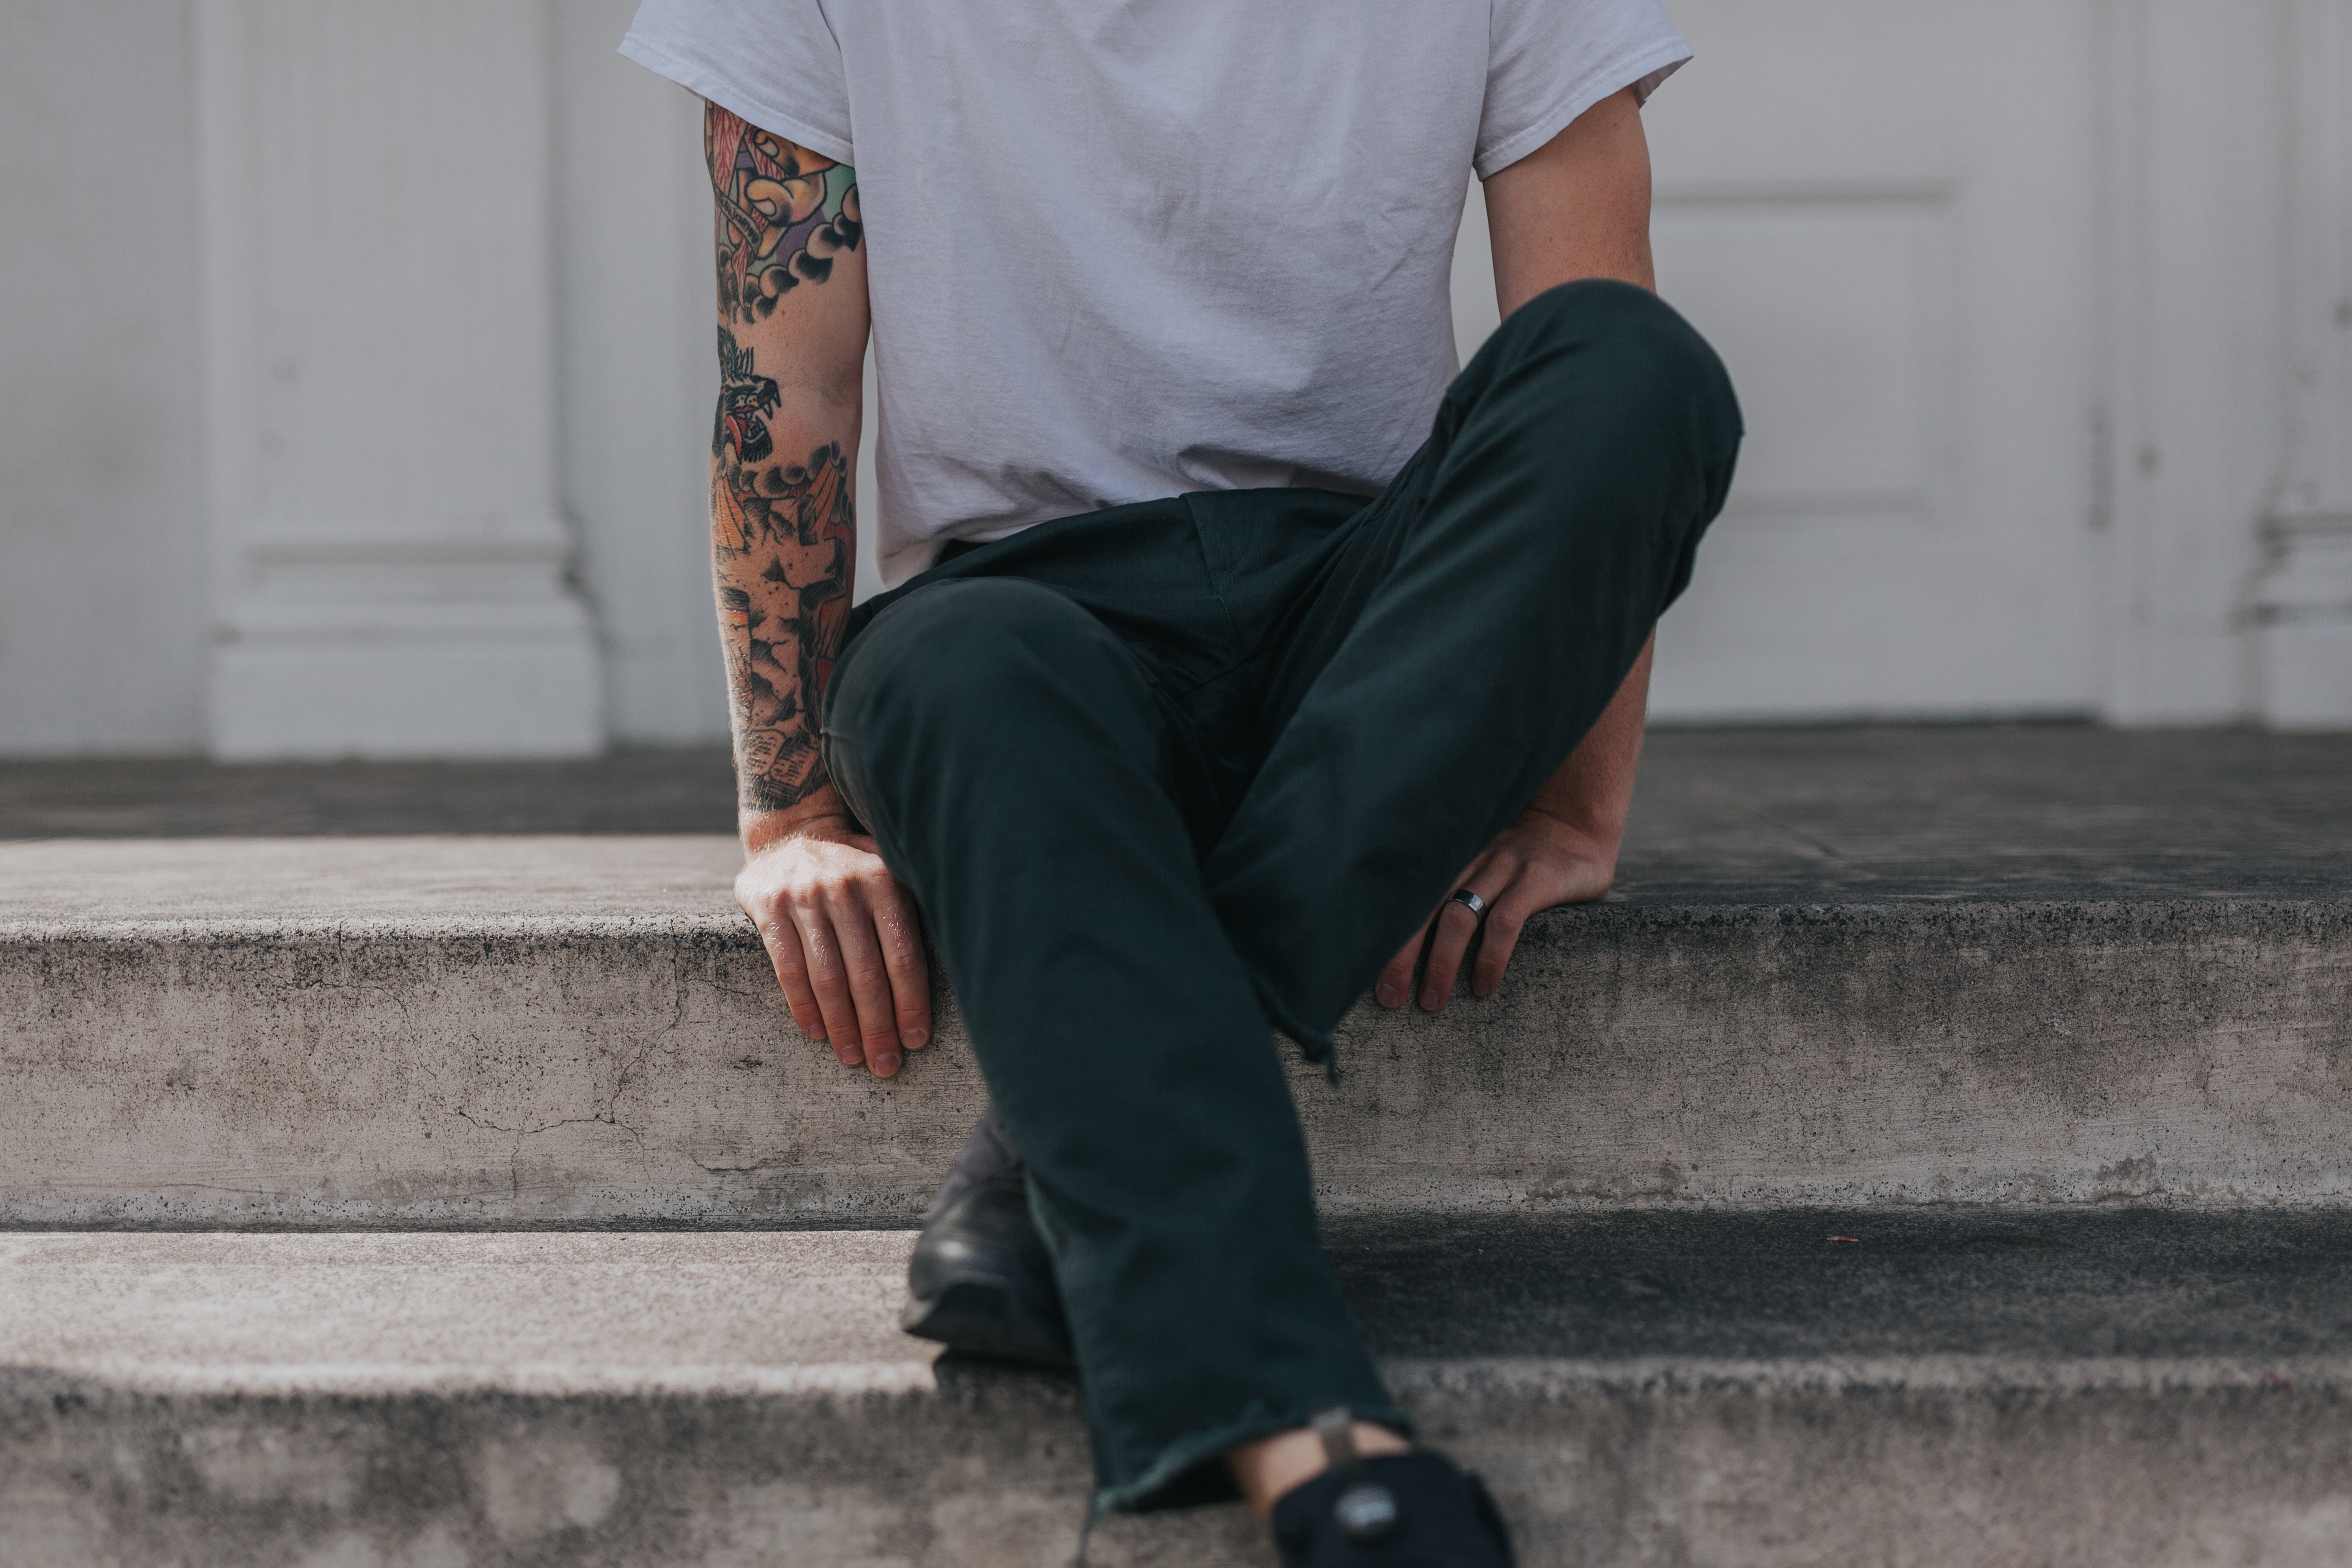 Low shot of a person with an art tattoo sitting on a porch step